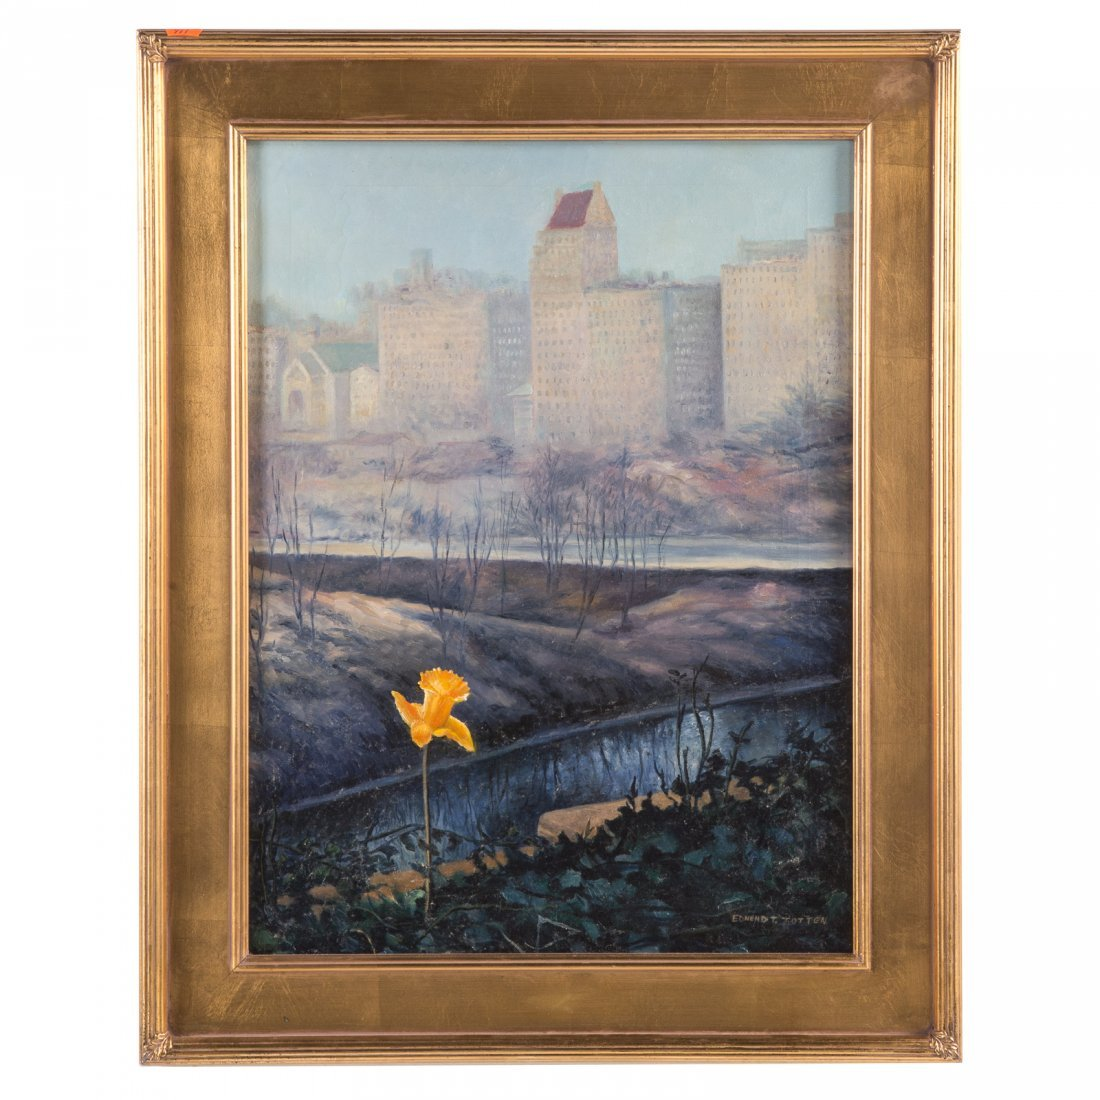 Edmund T. Totten. Daffodil by the East River, oil